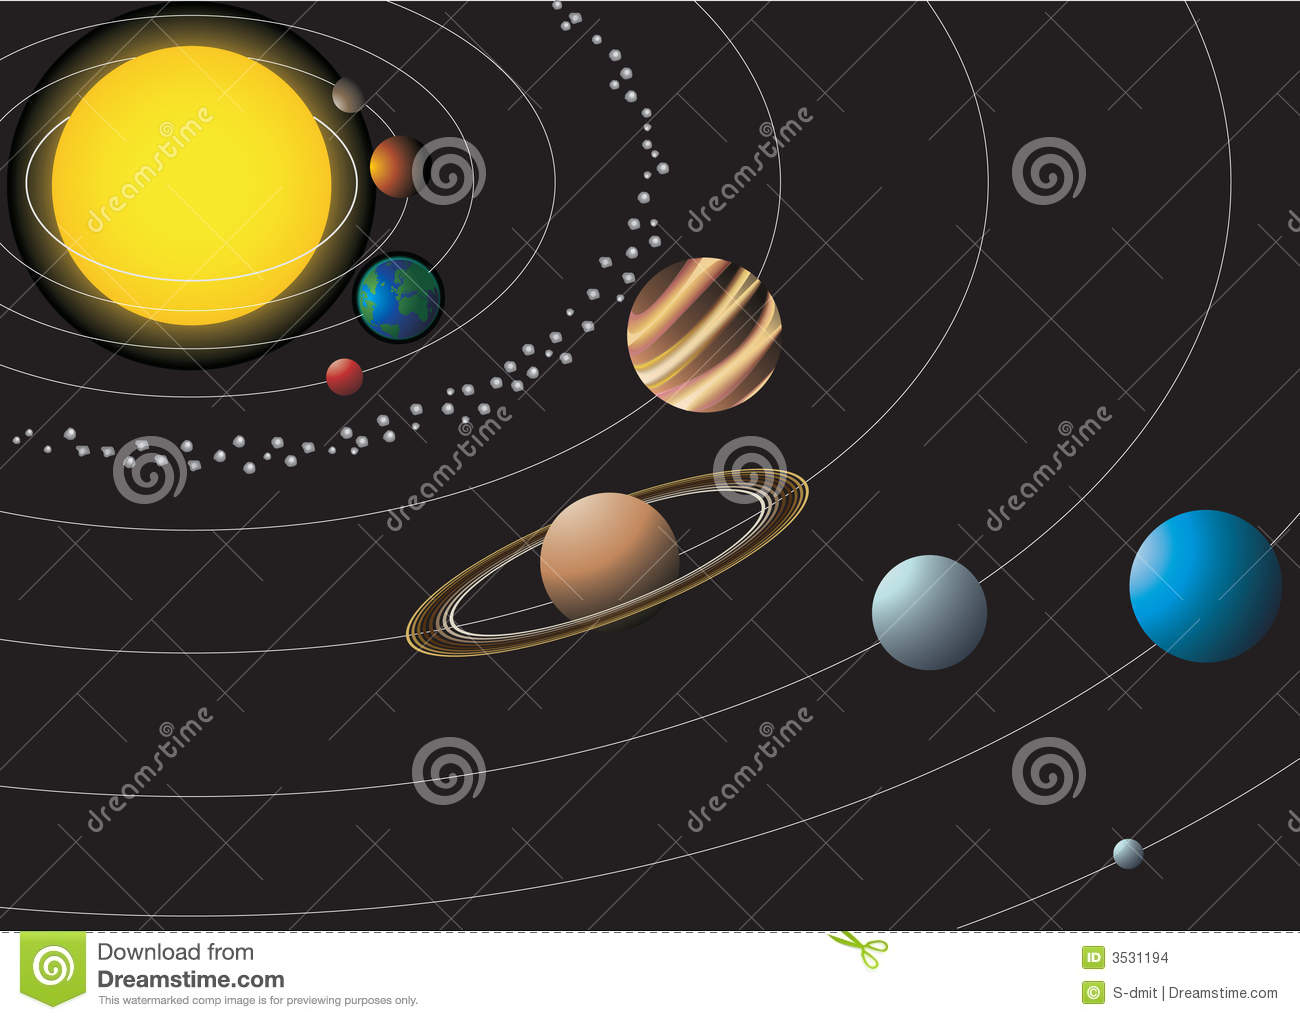 How To Travel To Another Solar System